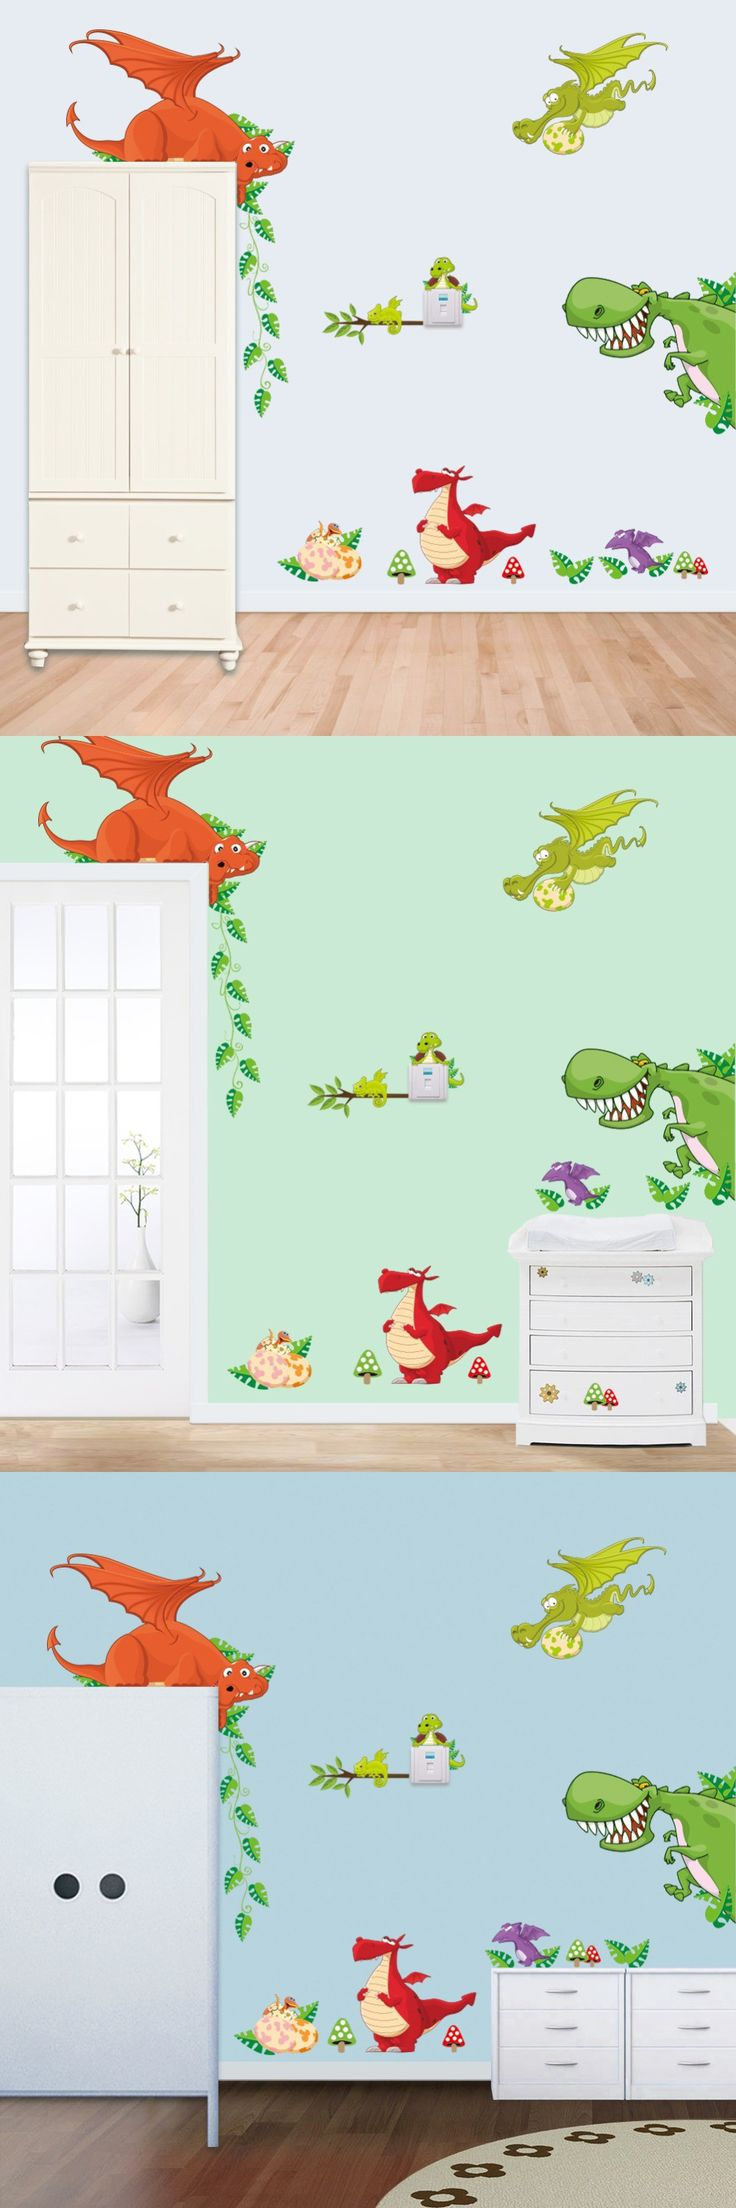 33 best deco paredes images on pinterest wall stickers home and cute colorful pvc removable dinosaur wall stickers home decor for home decoration adesivo de parede